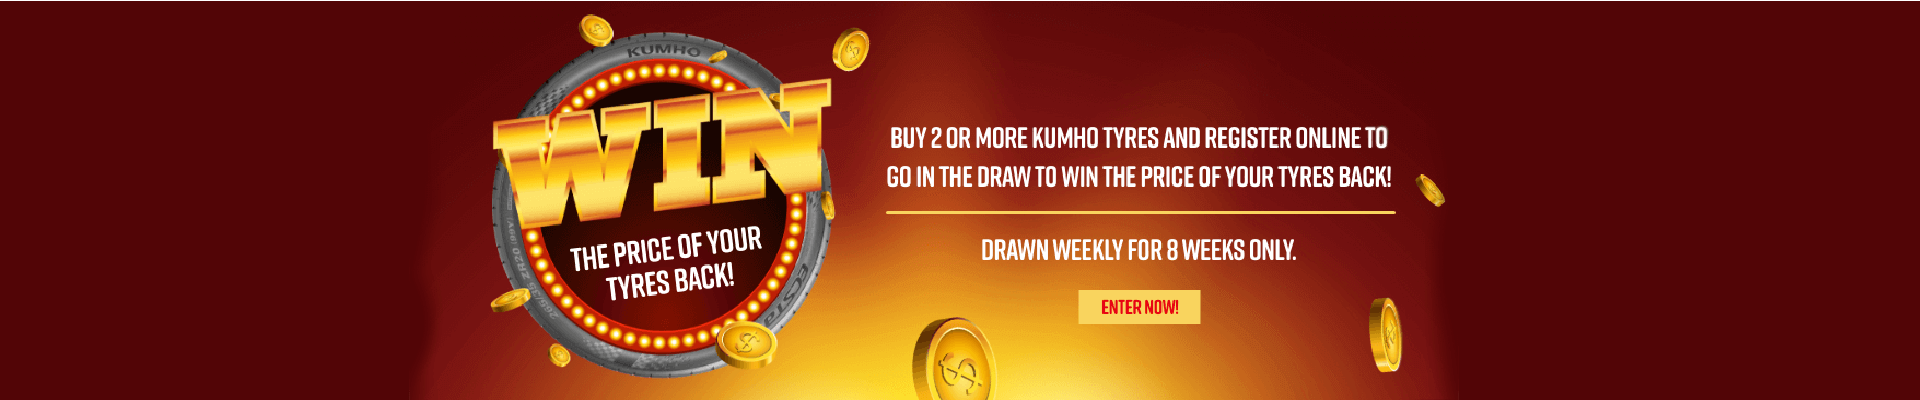 Buy 2 or more Kumho Tyres and Register online to go in the draw to win the price of your tyres back!